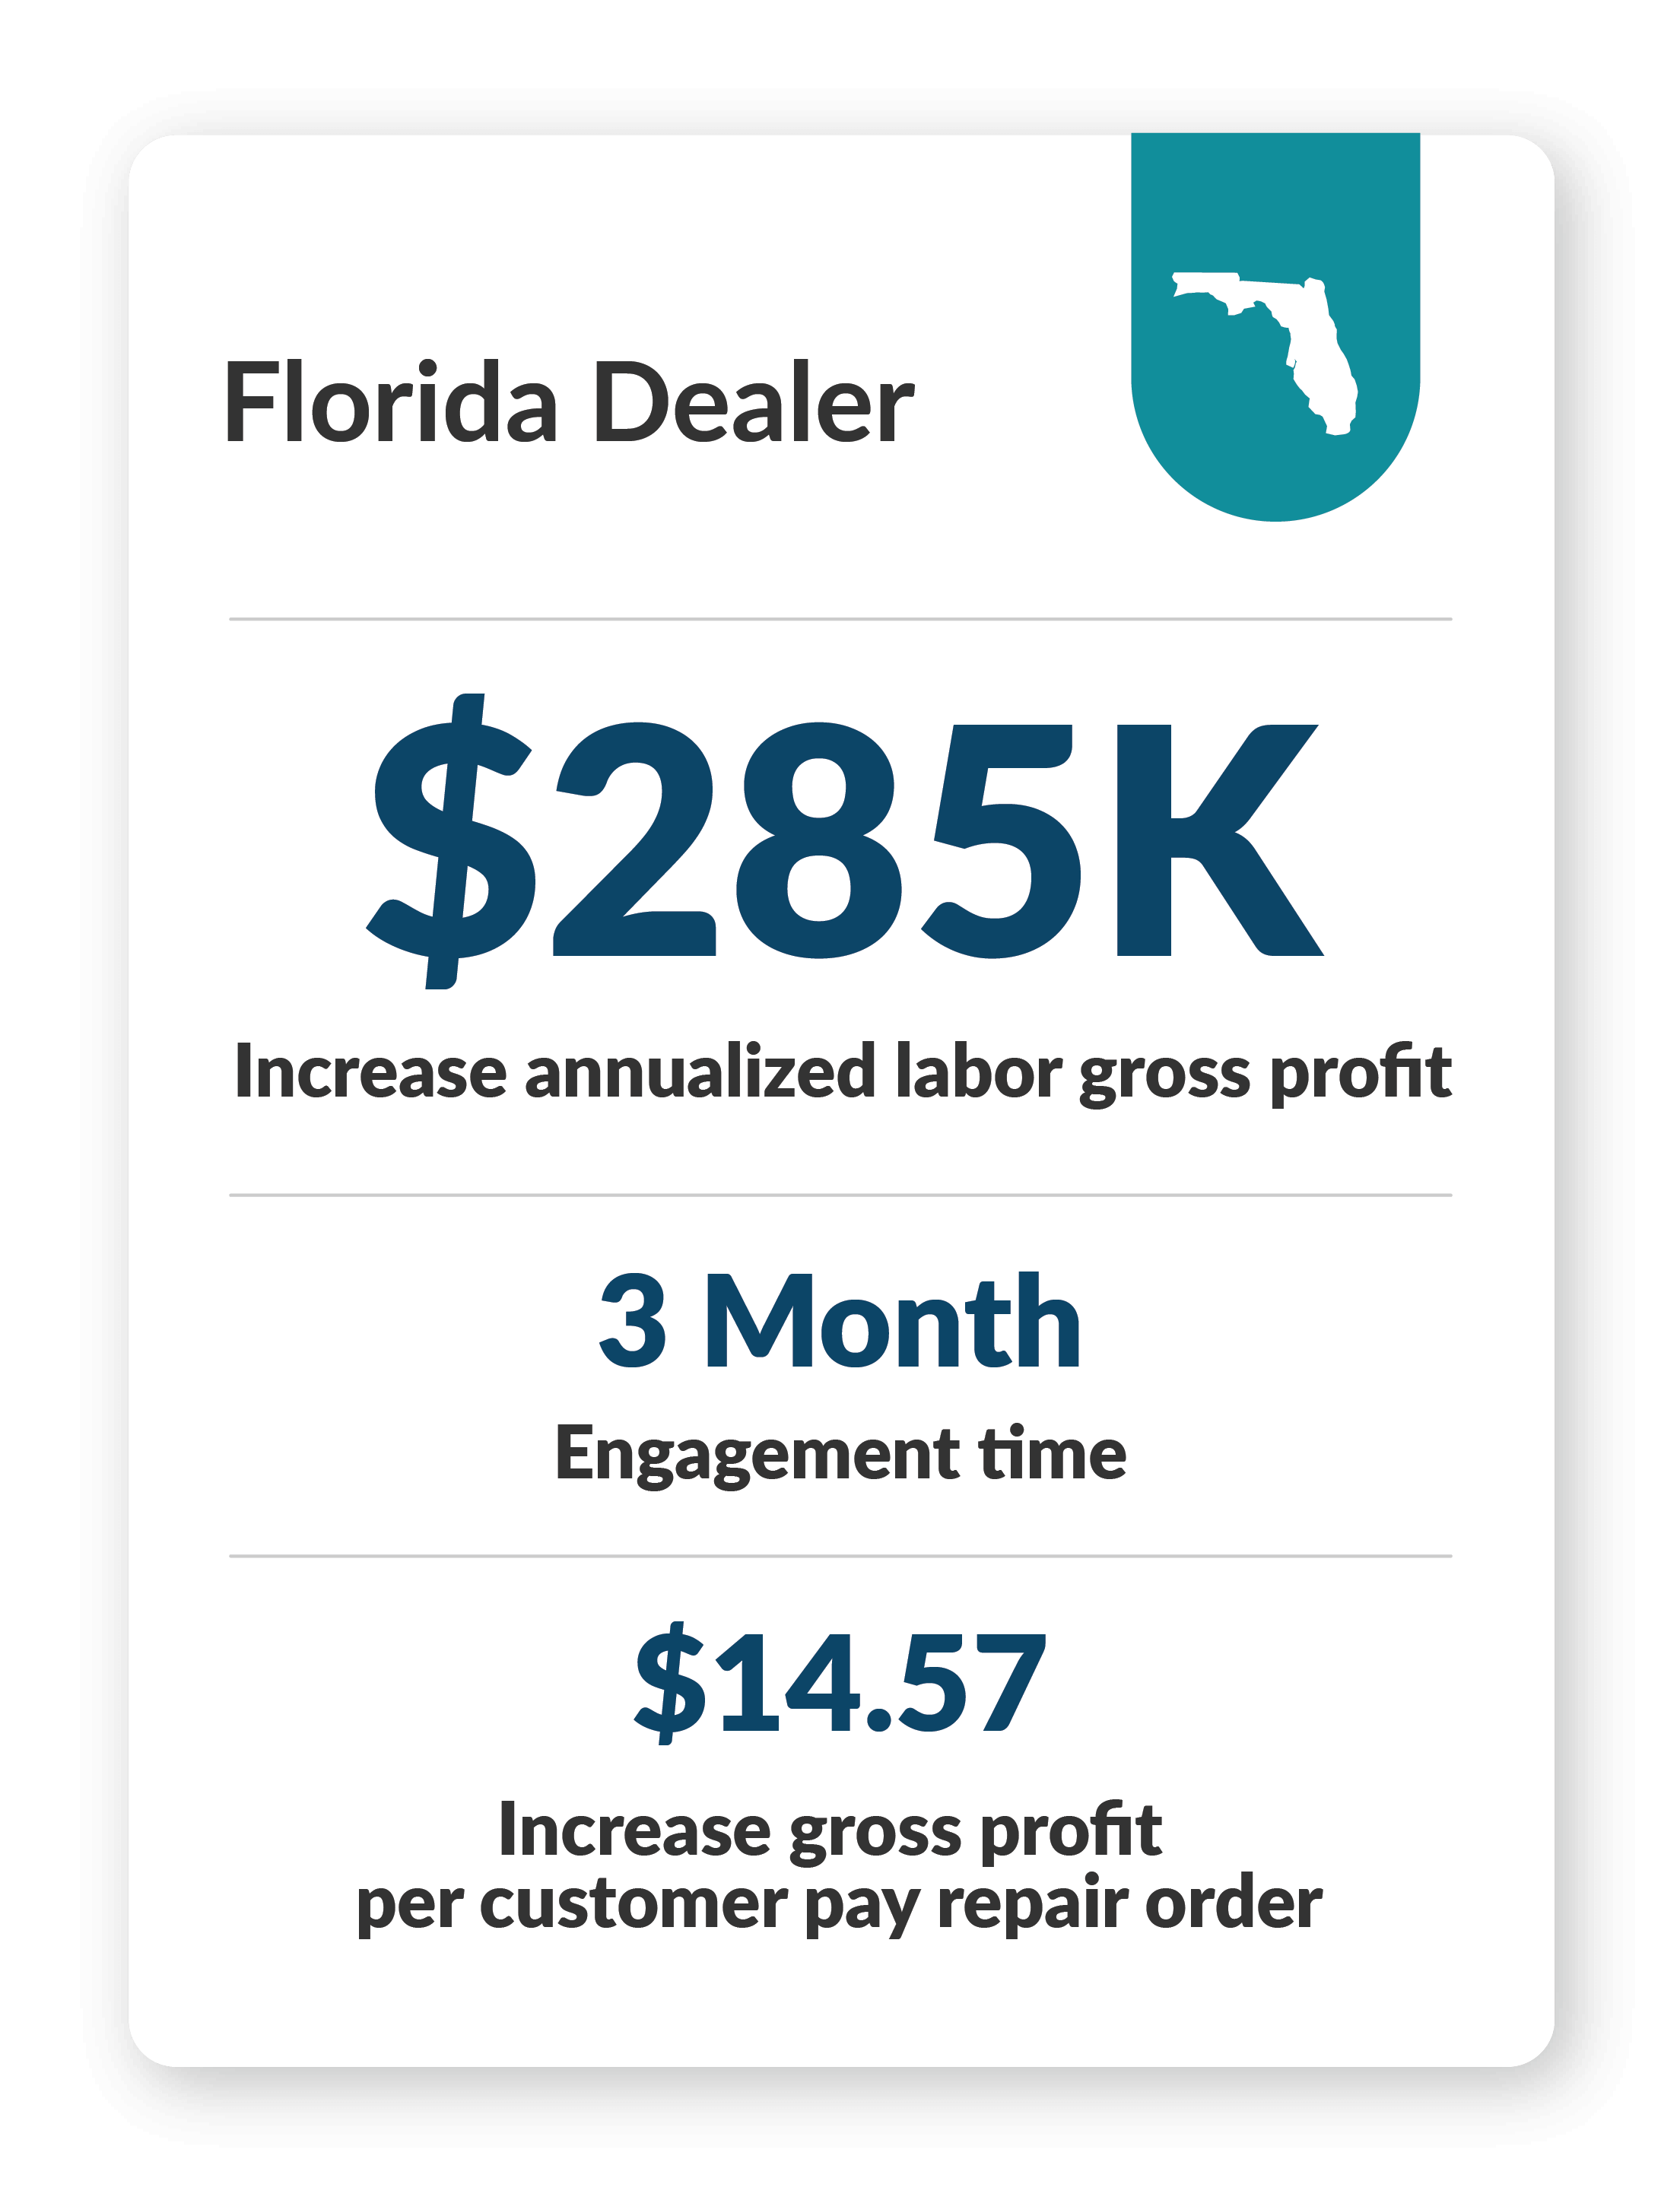 Hyundai Store in Florida - $285k increase annualized labor gross profit